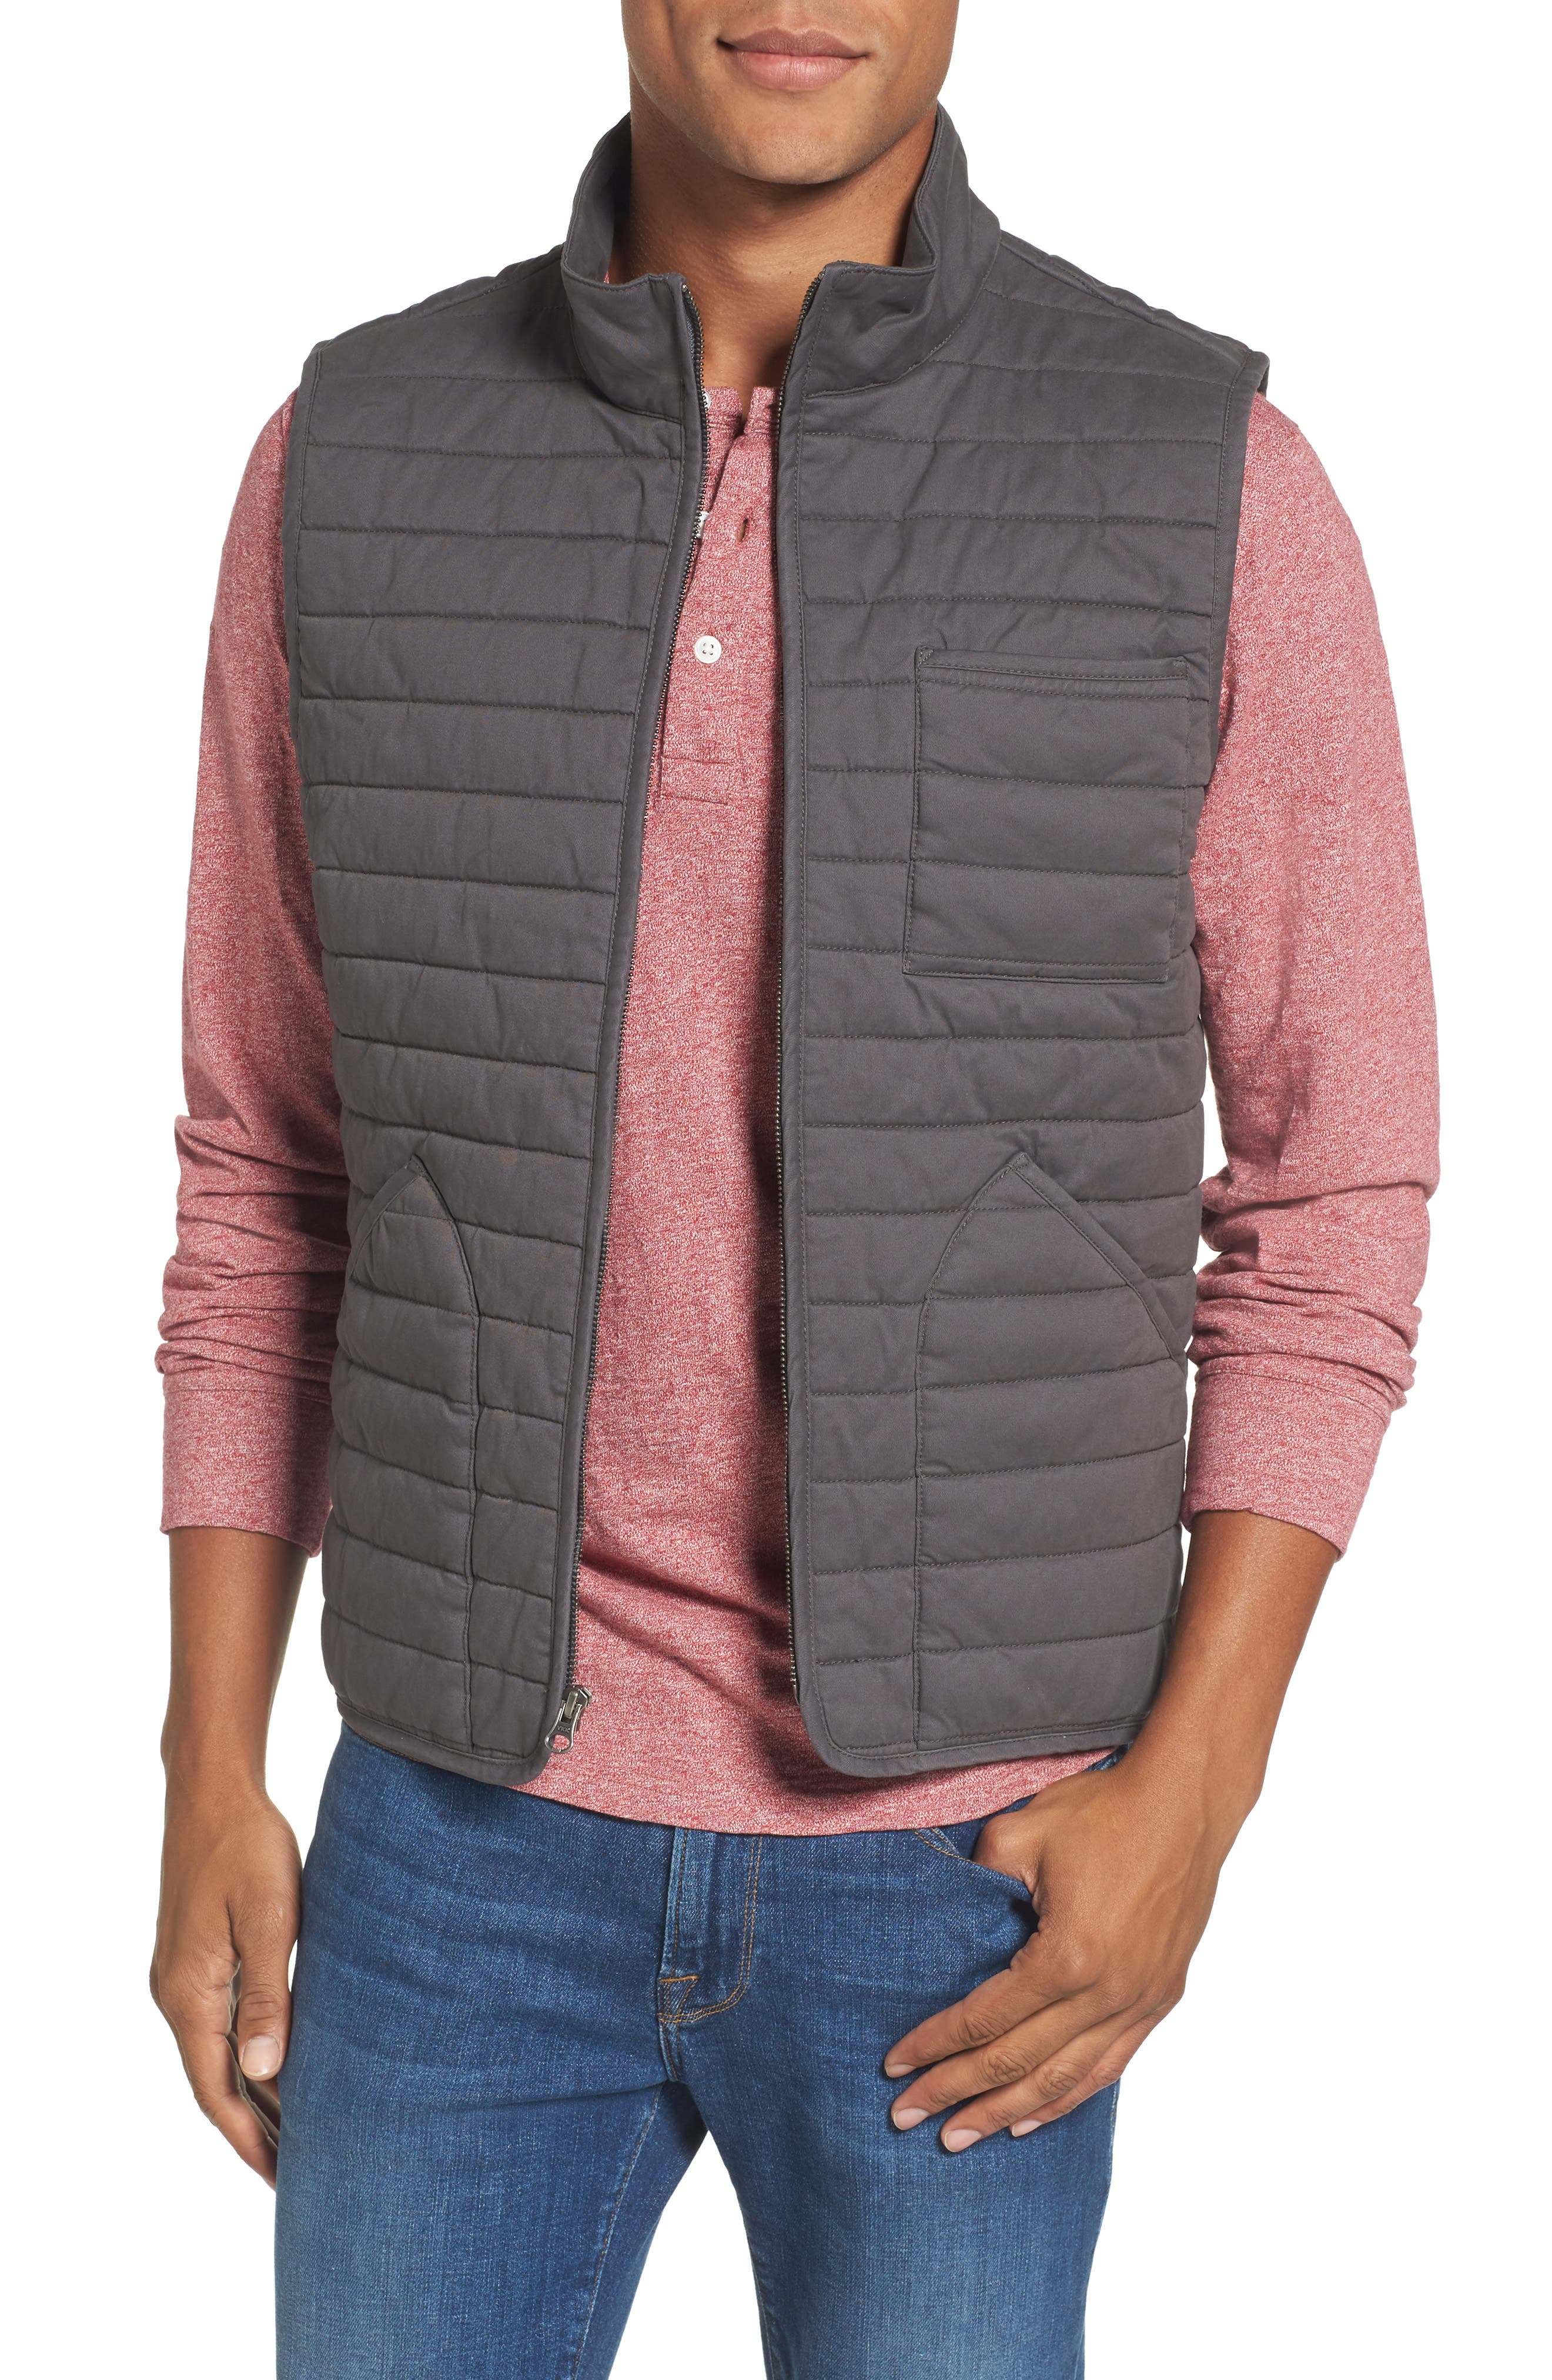 Quilted Twill Vest,                             Main thumbnail 1, color,                             021